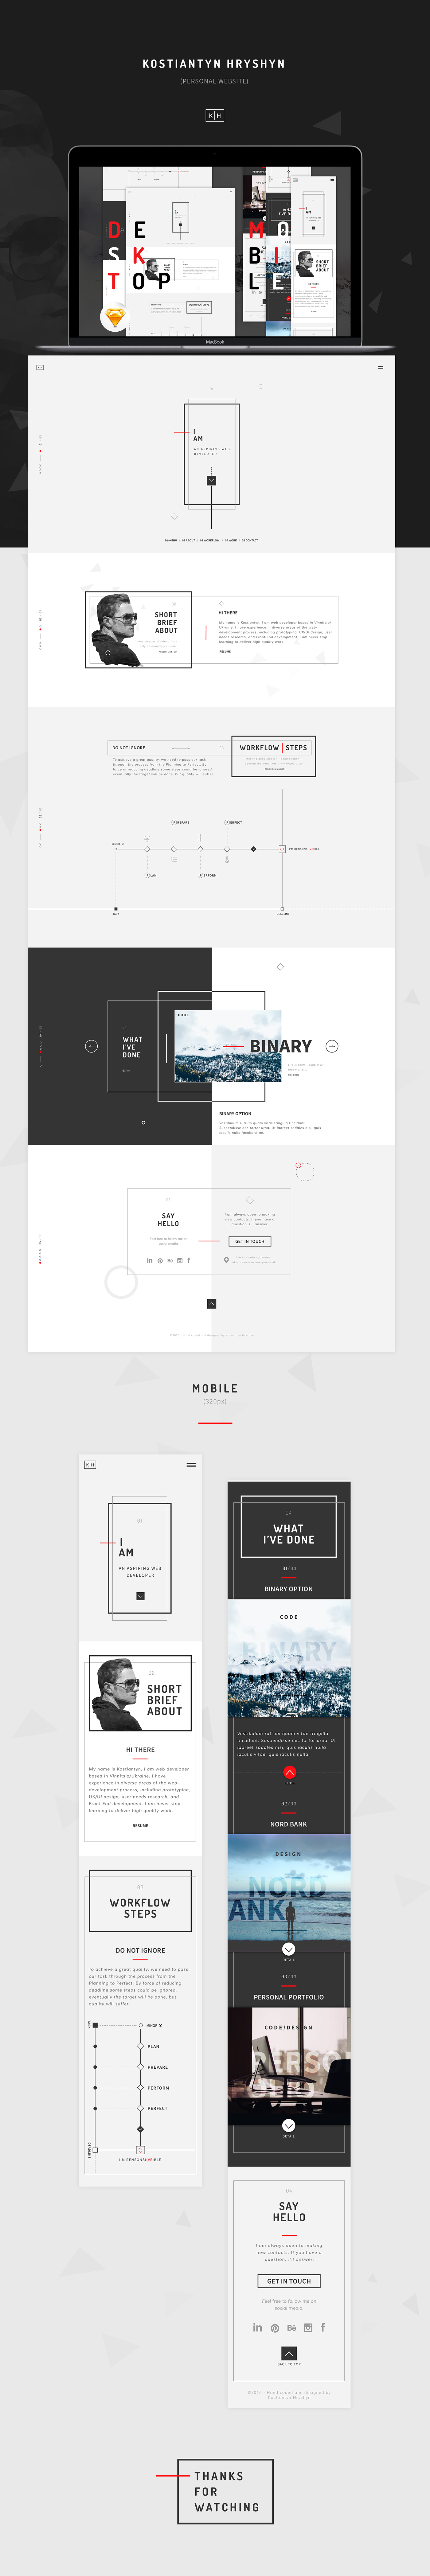 Personal website - Free template (Sketch) on Behance